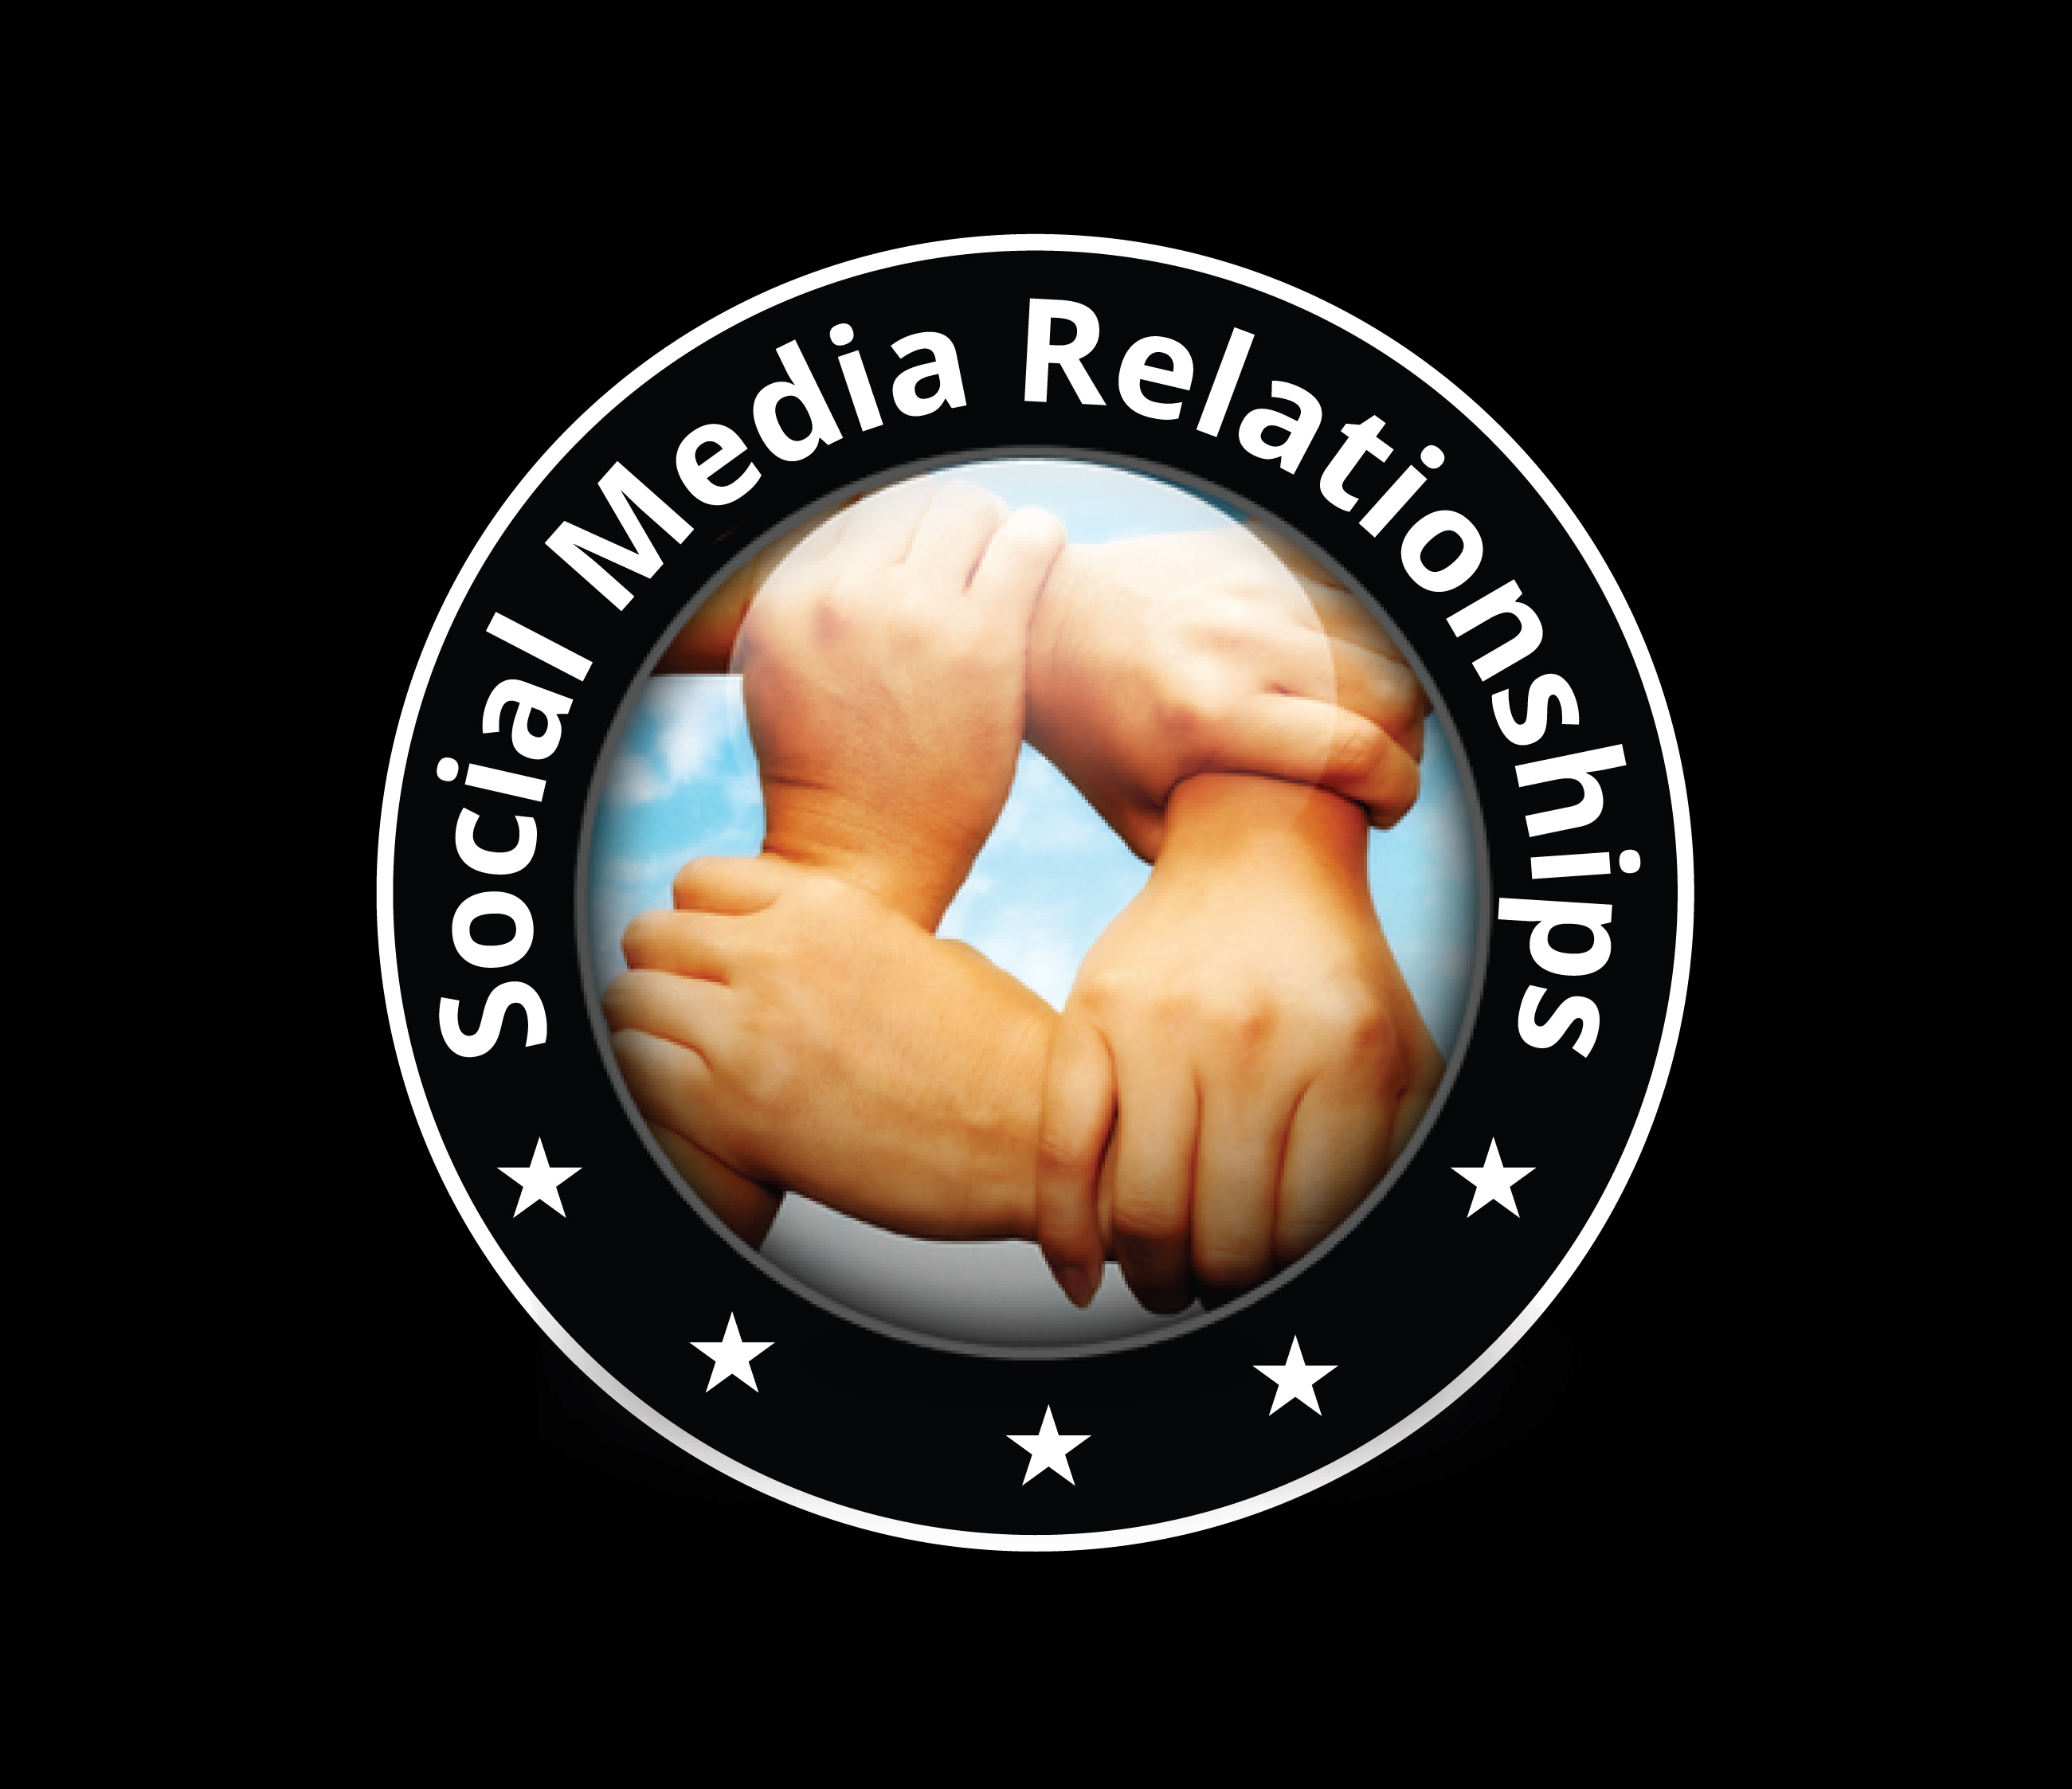 How To Build Social Media Relationships? - Image 1